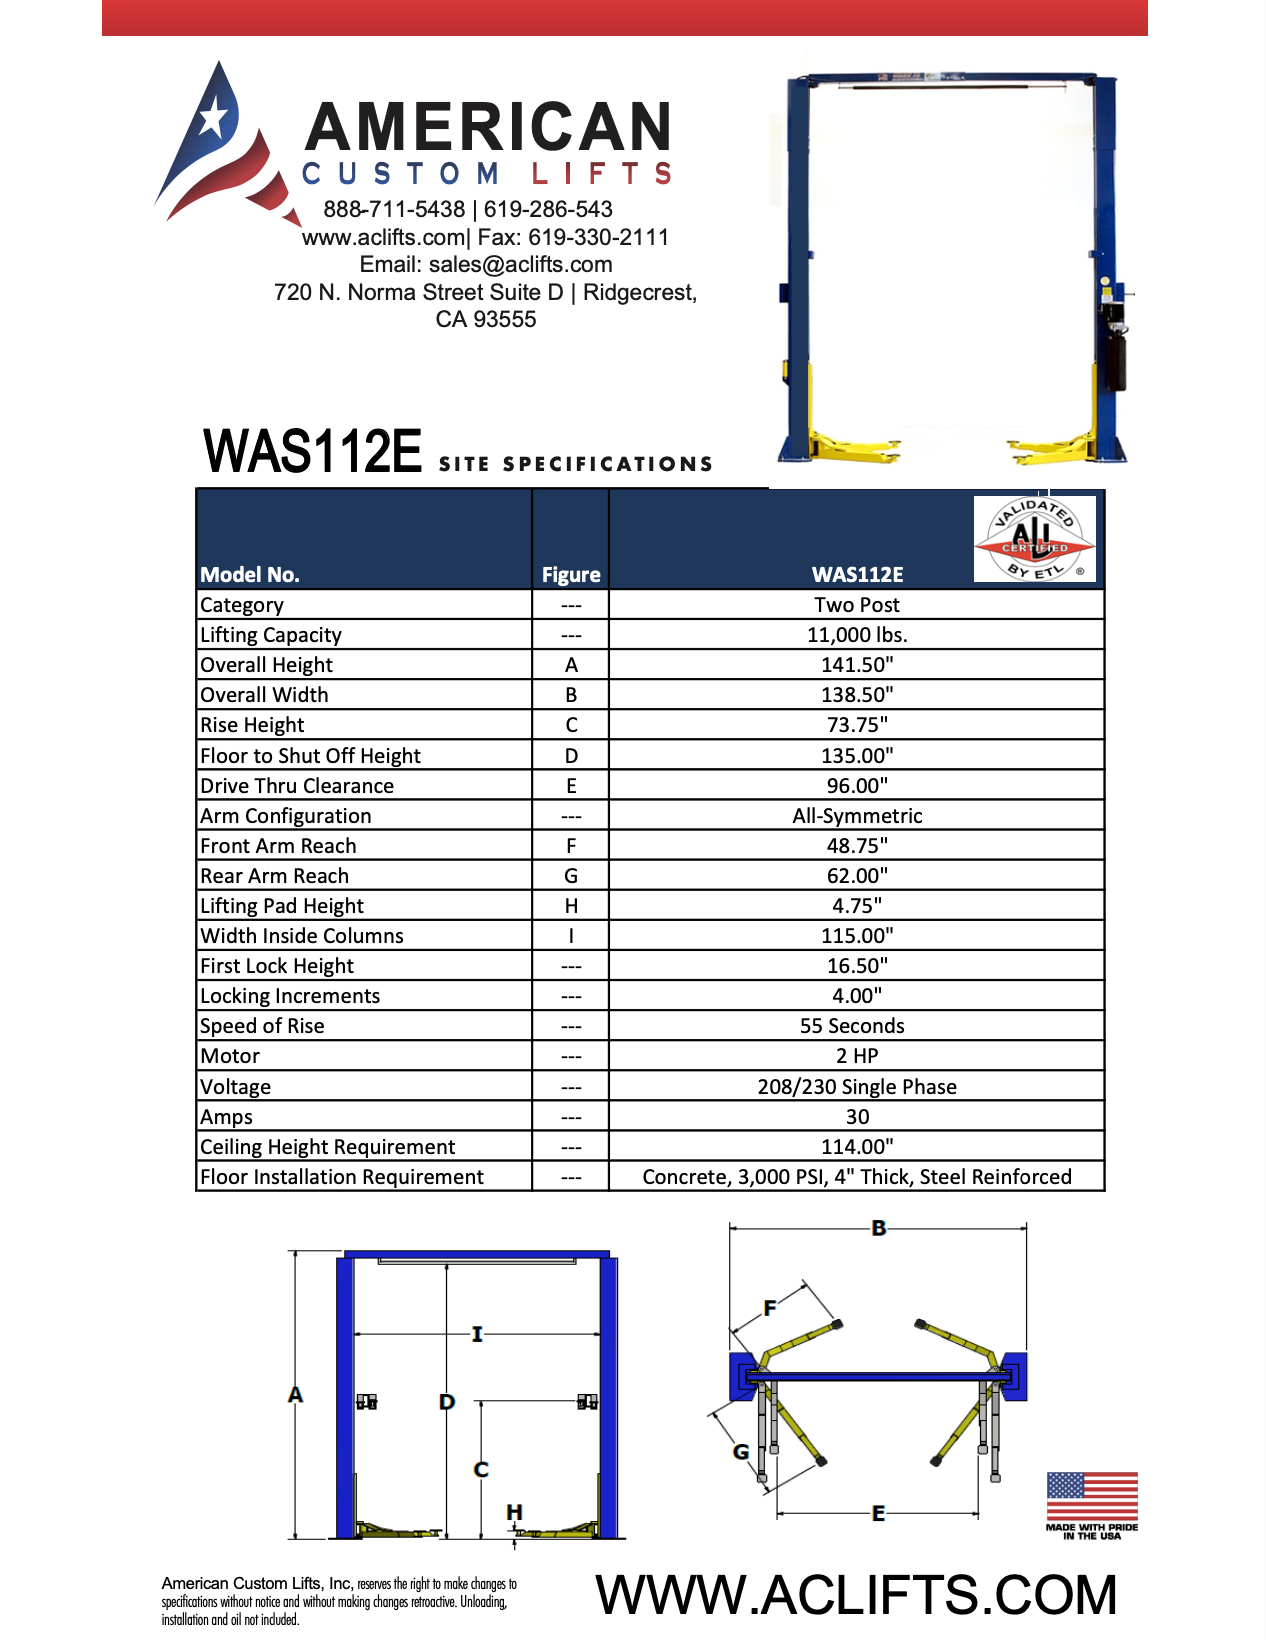 WAS112E Two Post Automotive Lift Specifications